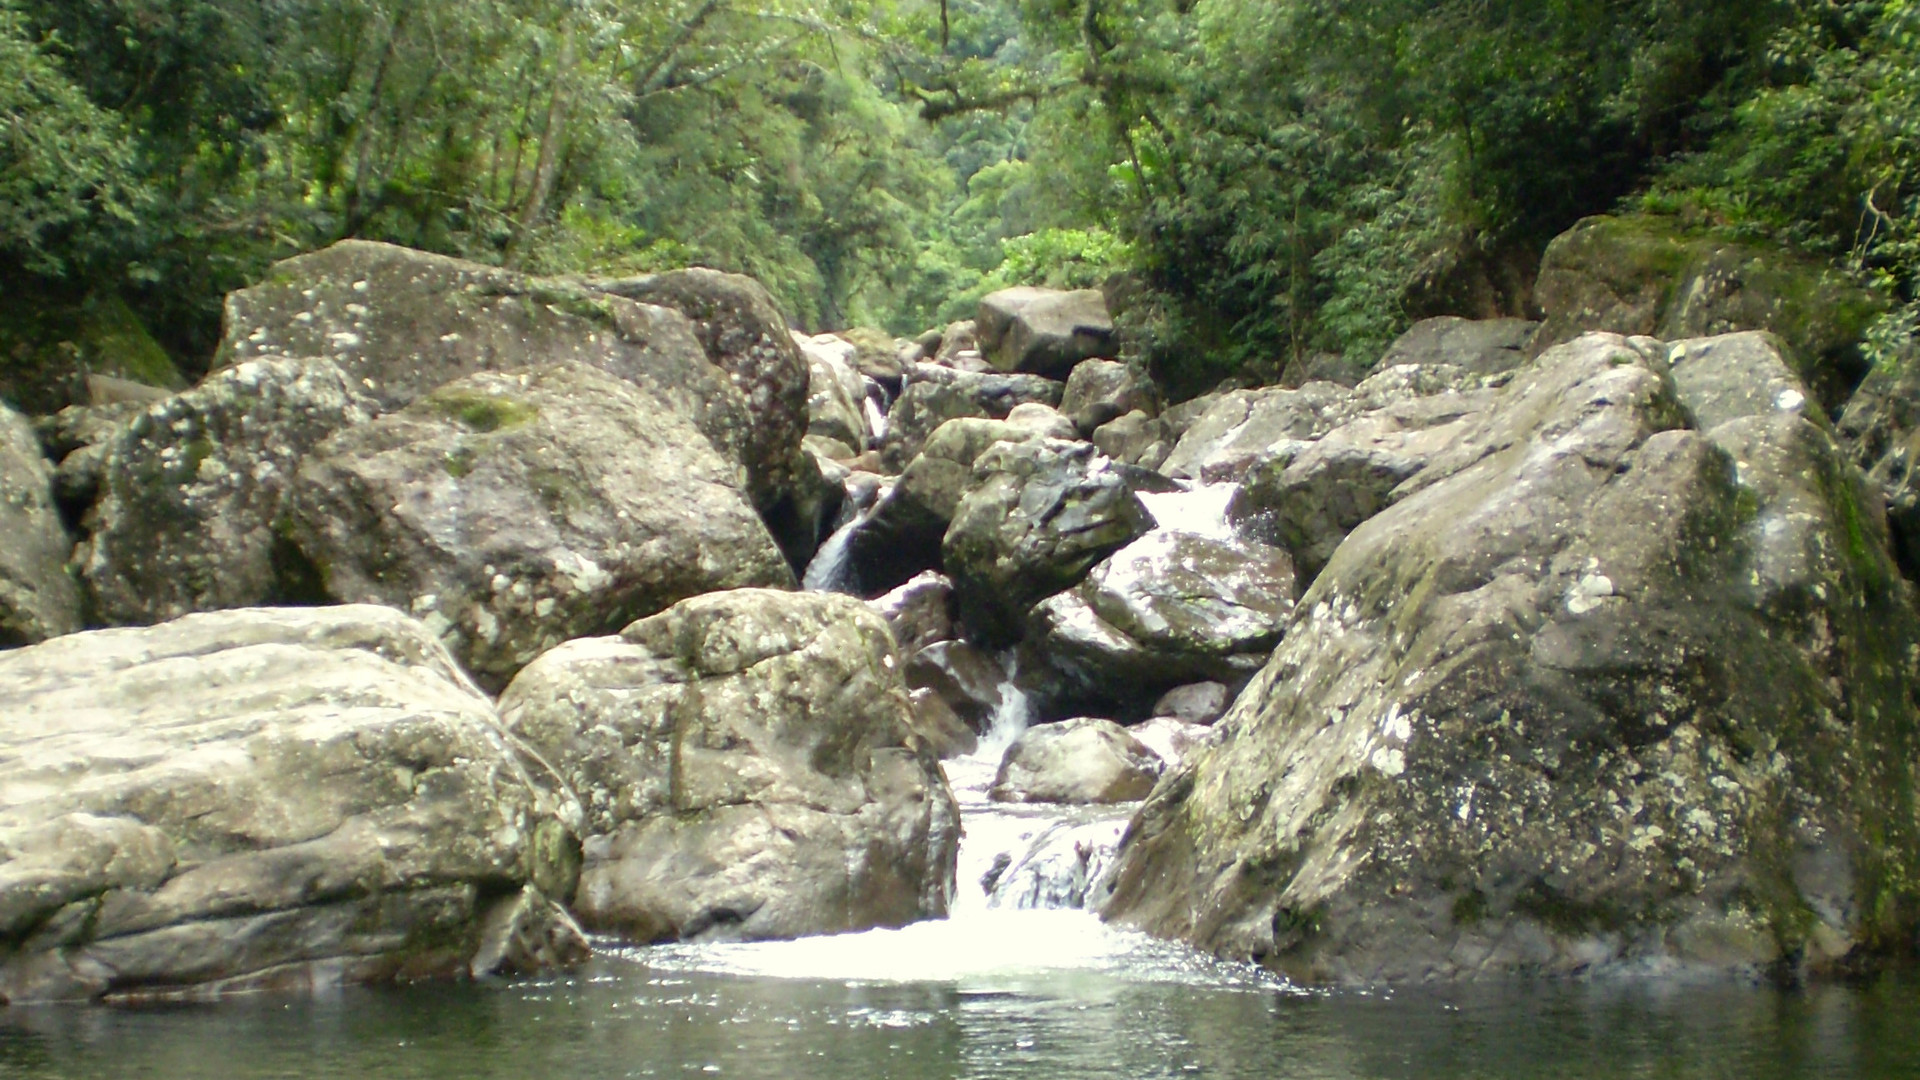 Aventura Piscina do Malacara